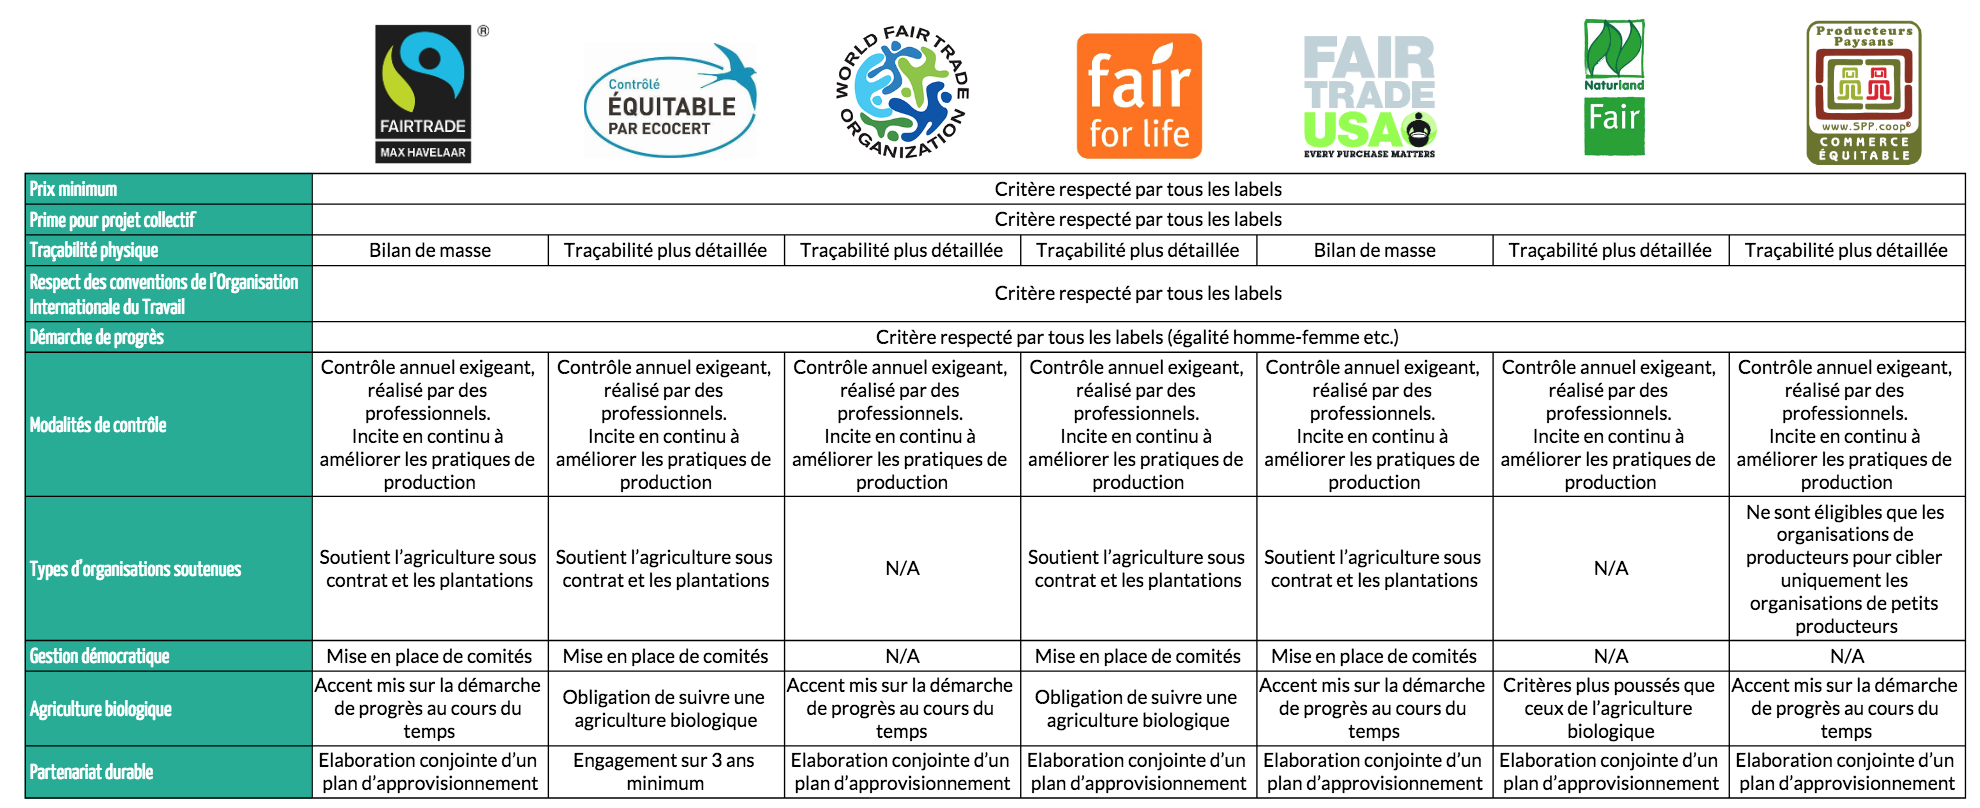 ed004da85fe17 comparatif-labels-commerce-equitable.png